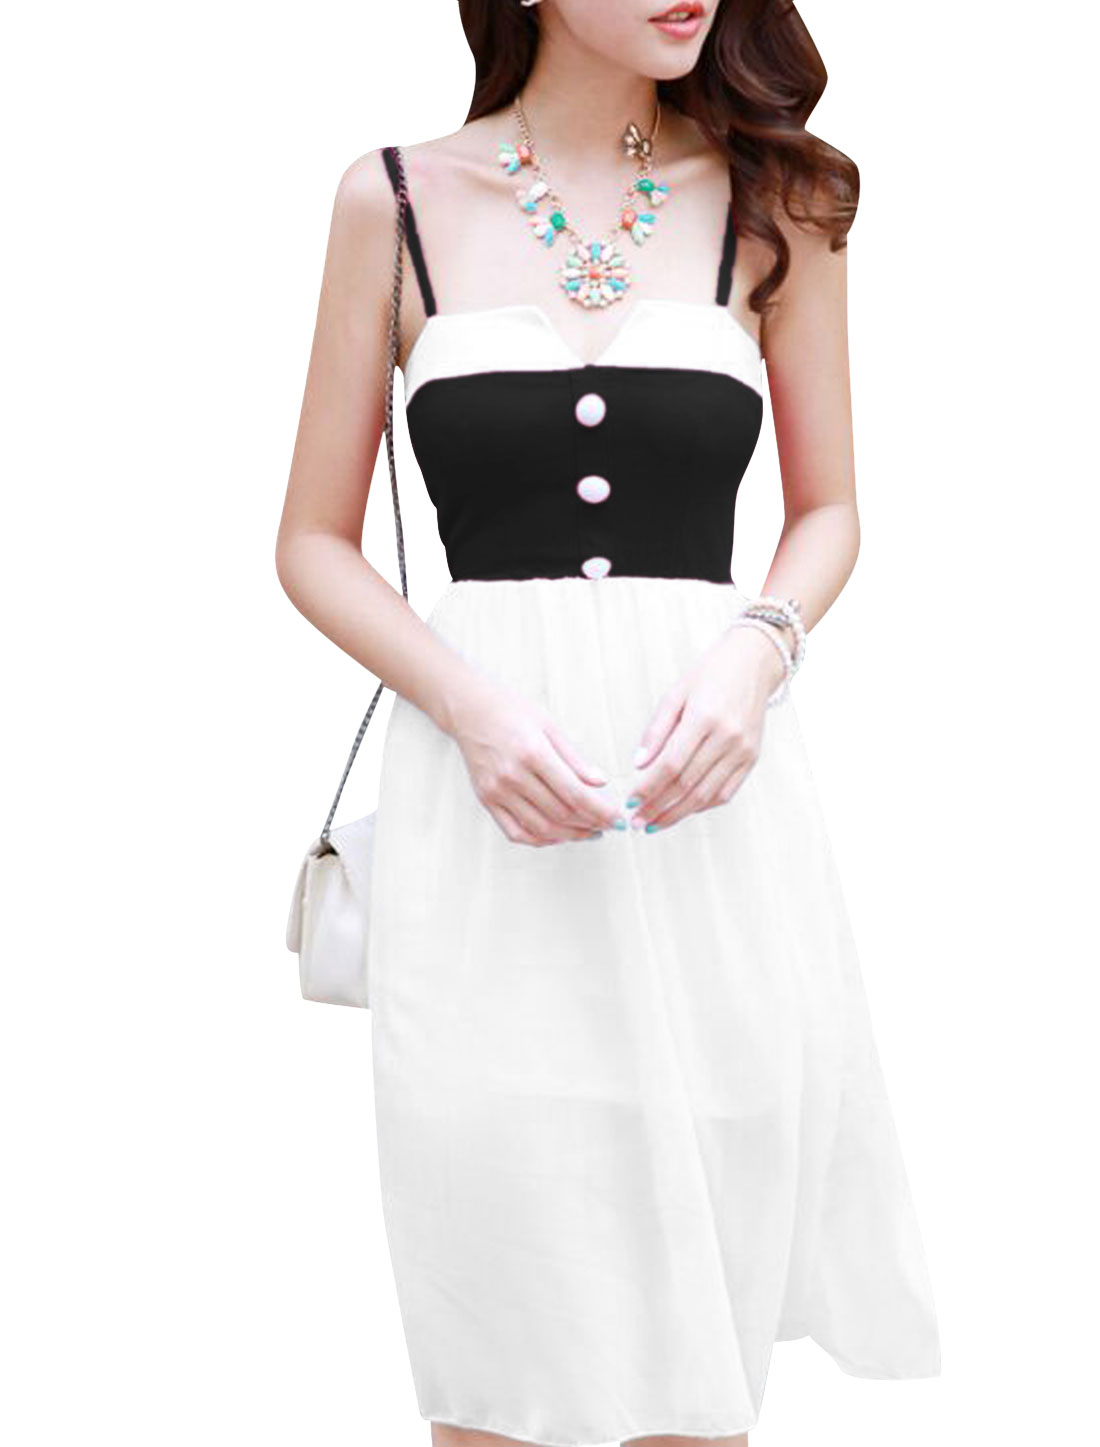 Lady Spaghetti Strap Split Detail Chiffon Overlay Dress White Black XS